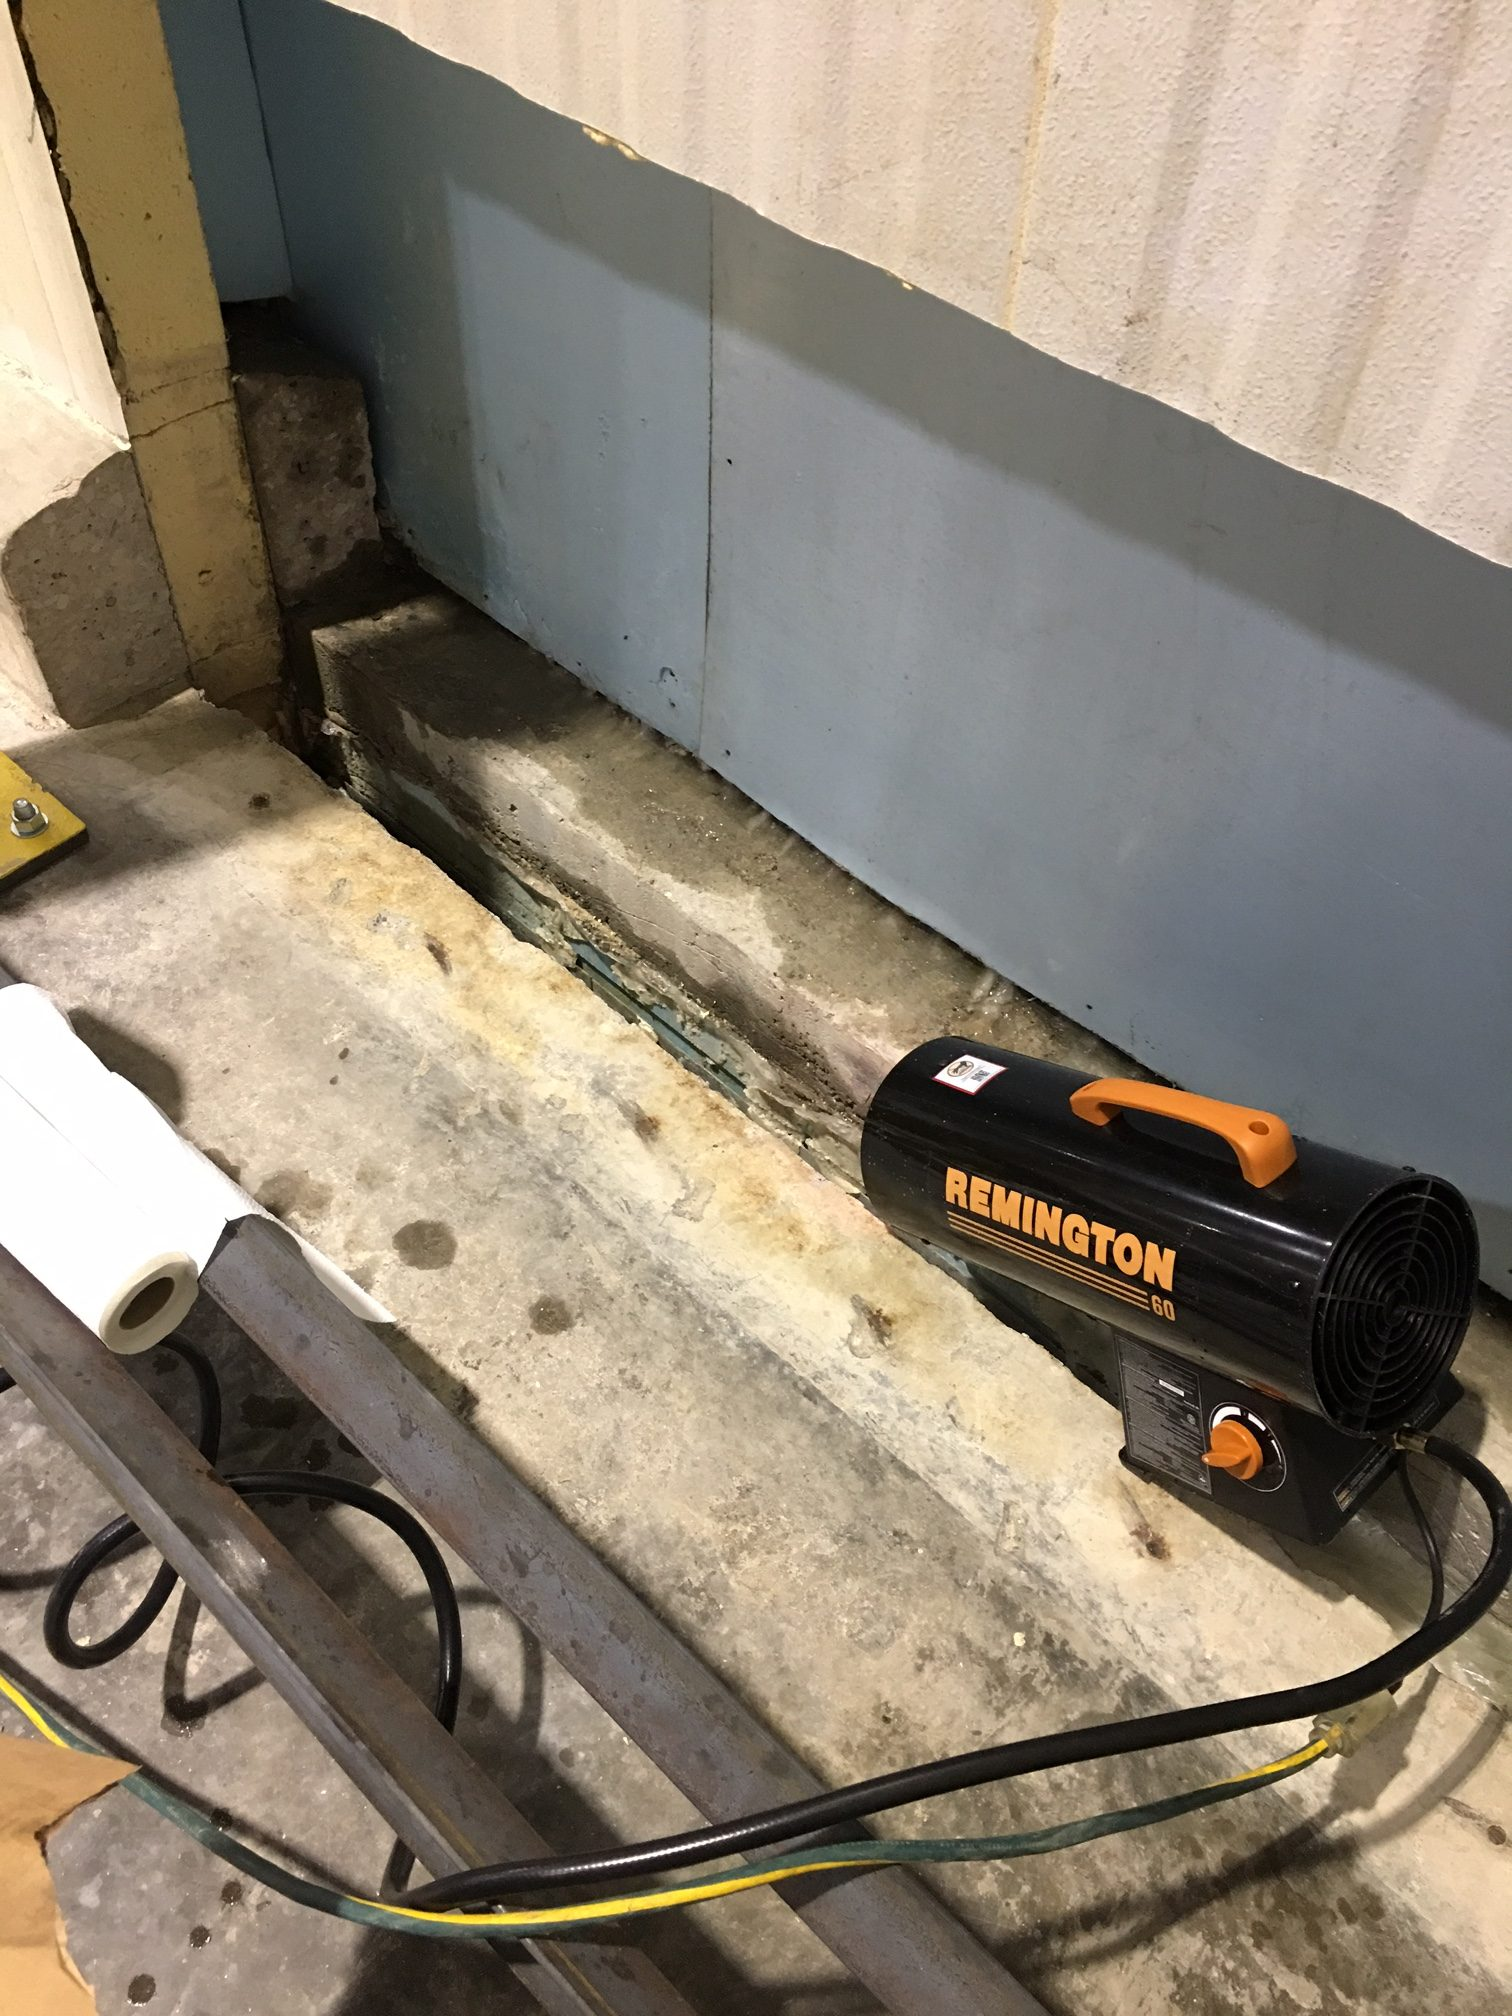 Warm air is applied to drive back the frost and dry the concrete prior to repairing with Roadware 10 Minute Concrete Mender.